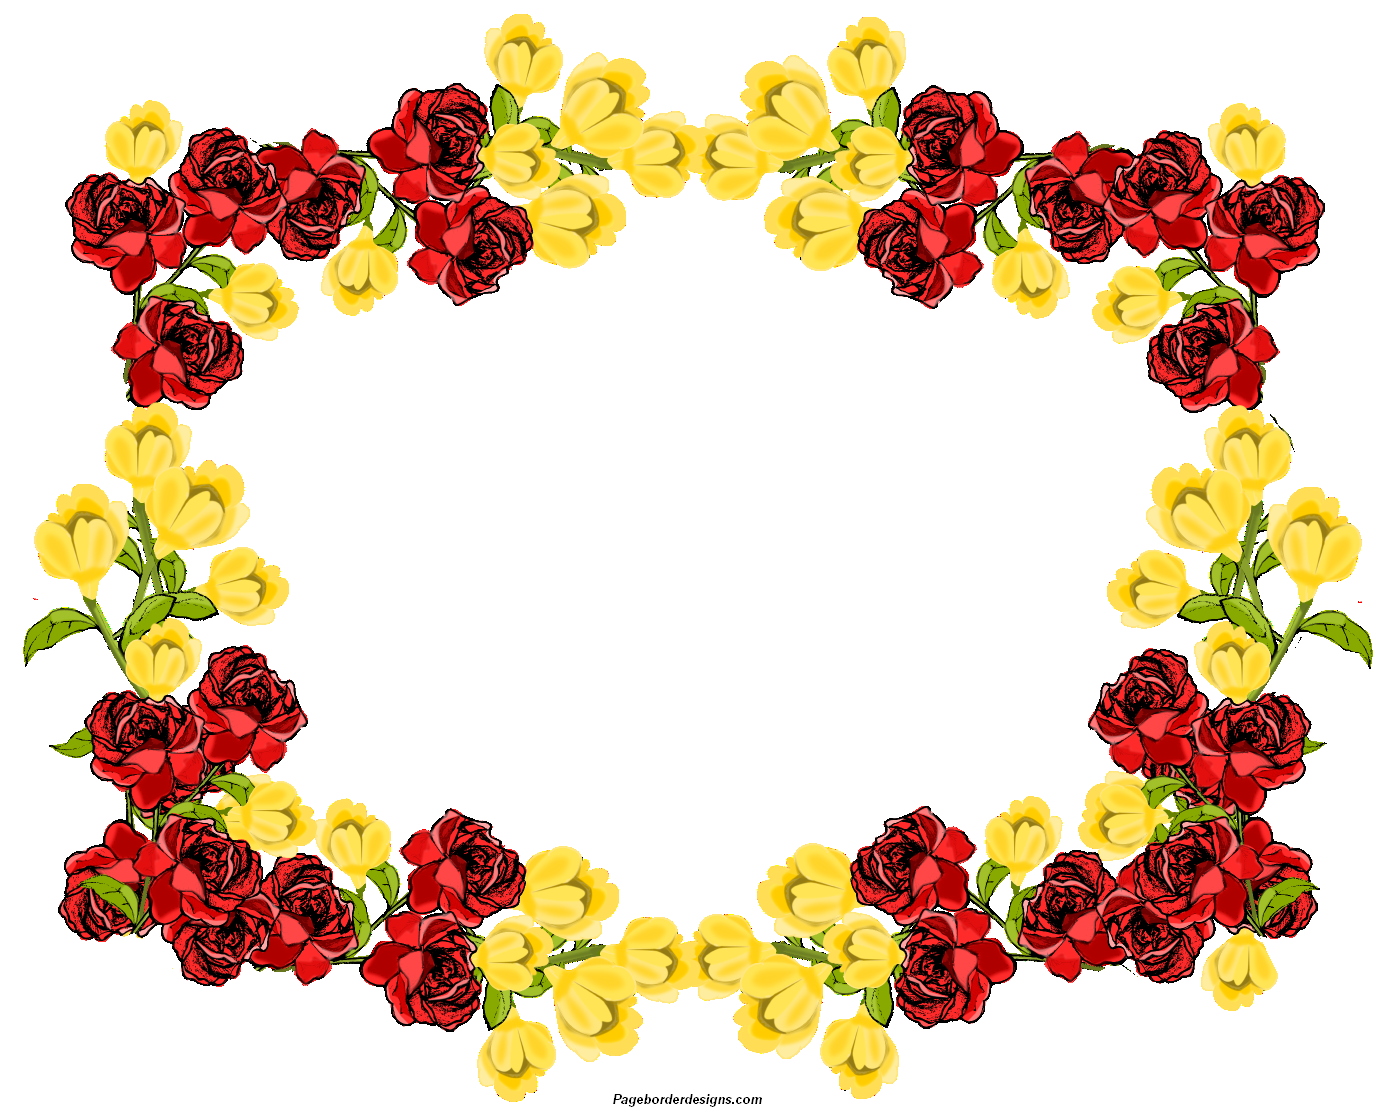 Beautiful clip art borders jpg free library Beautiful Red and yellow Clip Art Flowers Frame Border Design 2014 ... jpg free library